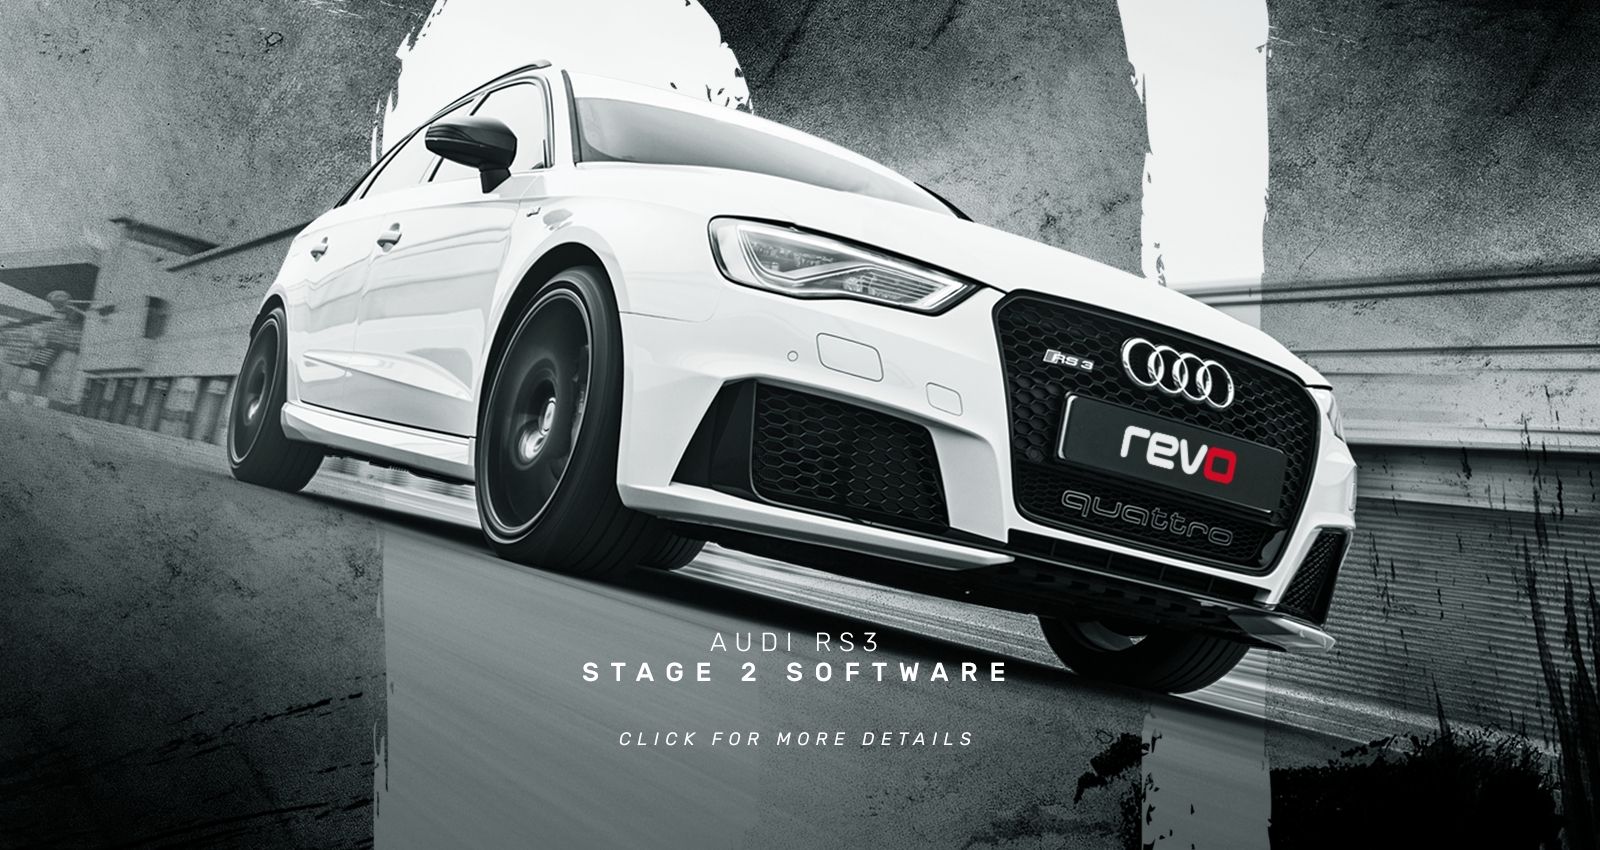 AUDI RS3 STAGE2 SOFTWARE